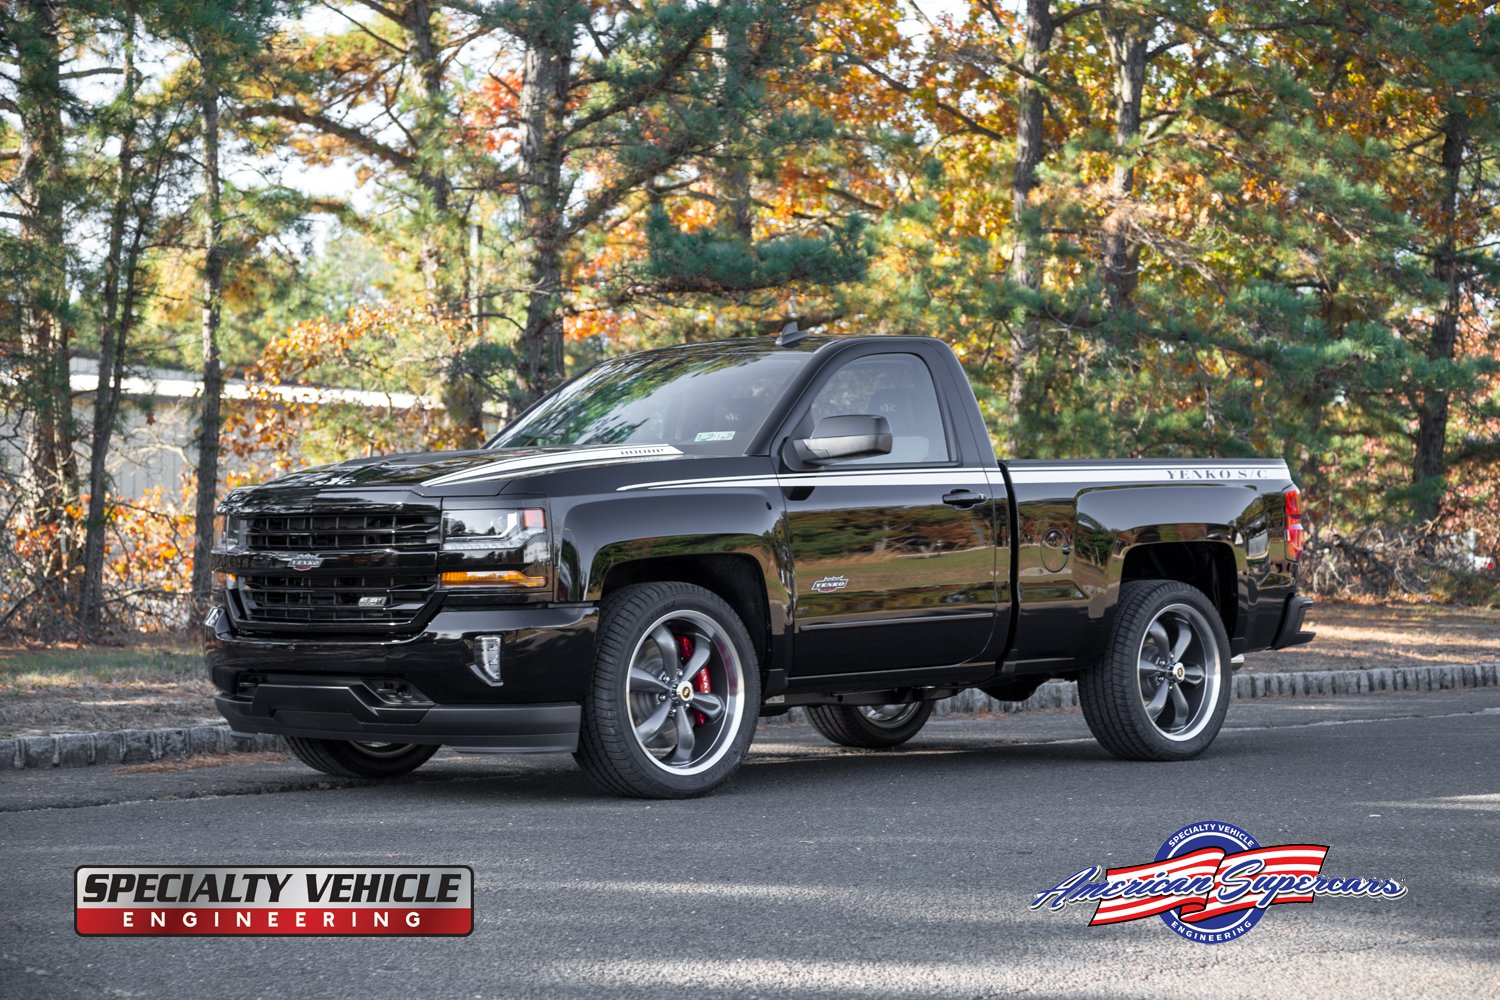 800-horsepower 2018 Yenko Silverado Is Not Your Average ...